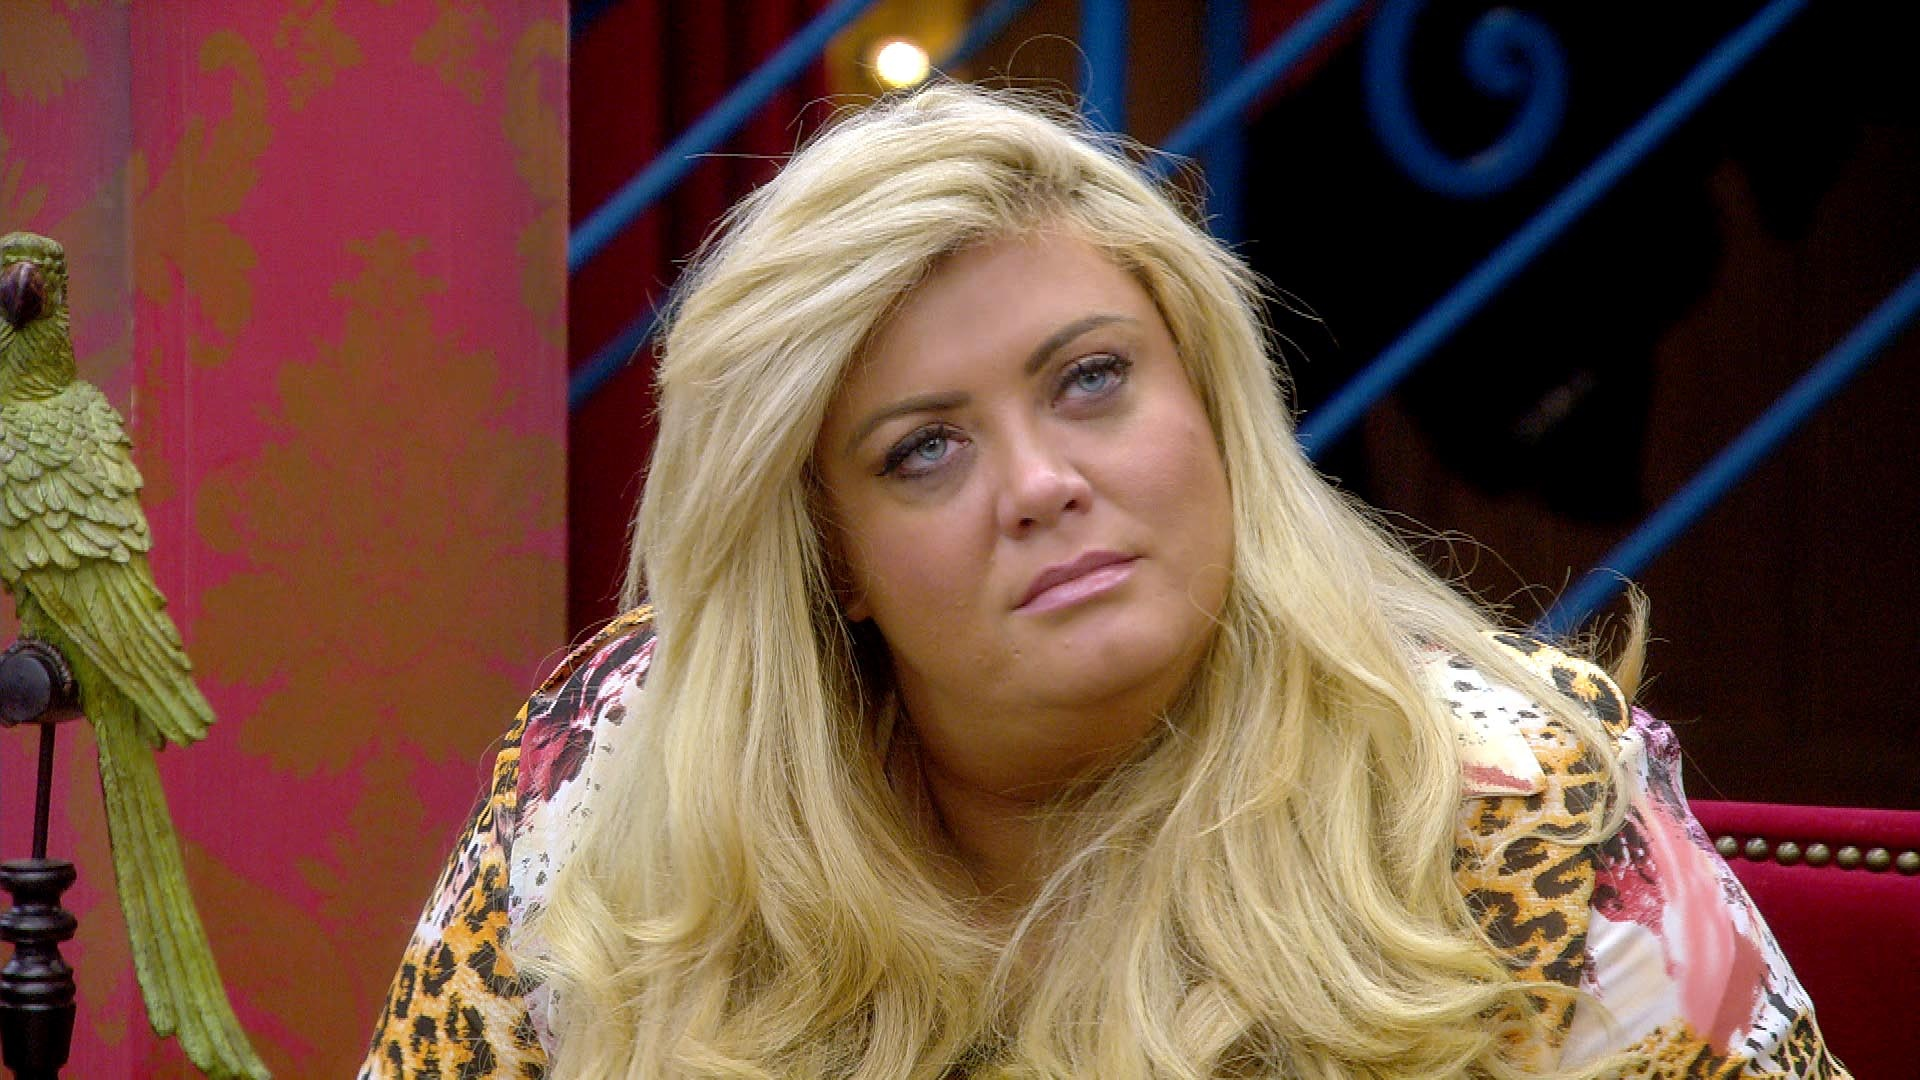 Gemma Collins removed from Celebrity Big Brother house after cutting finger